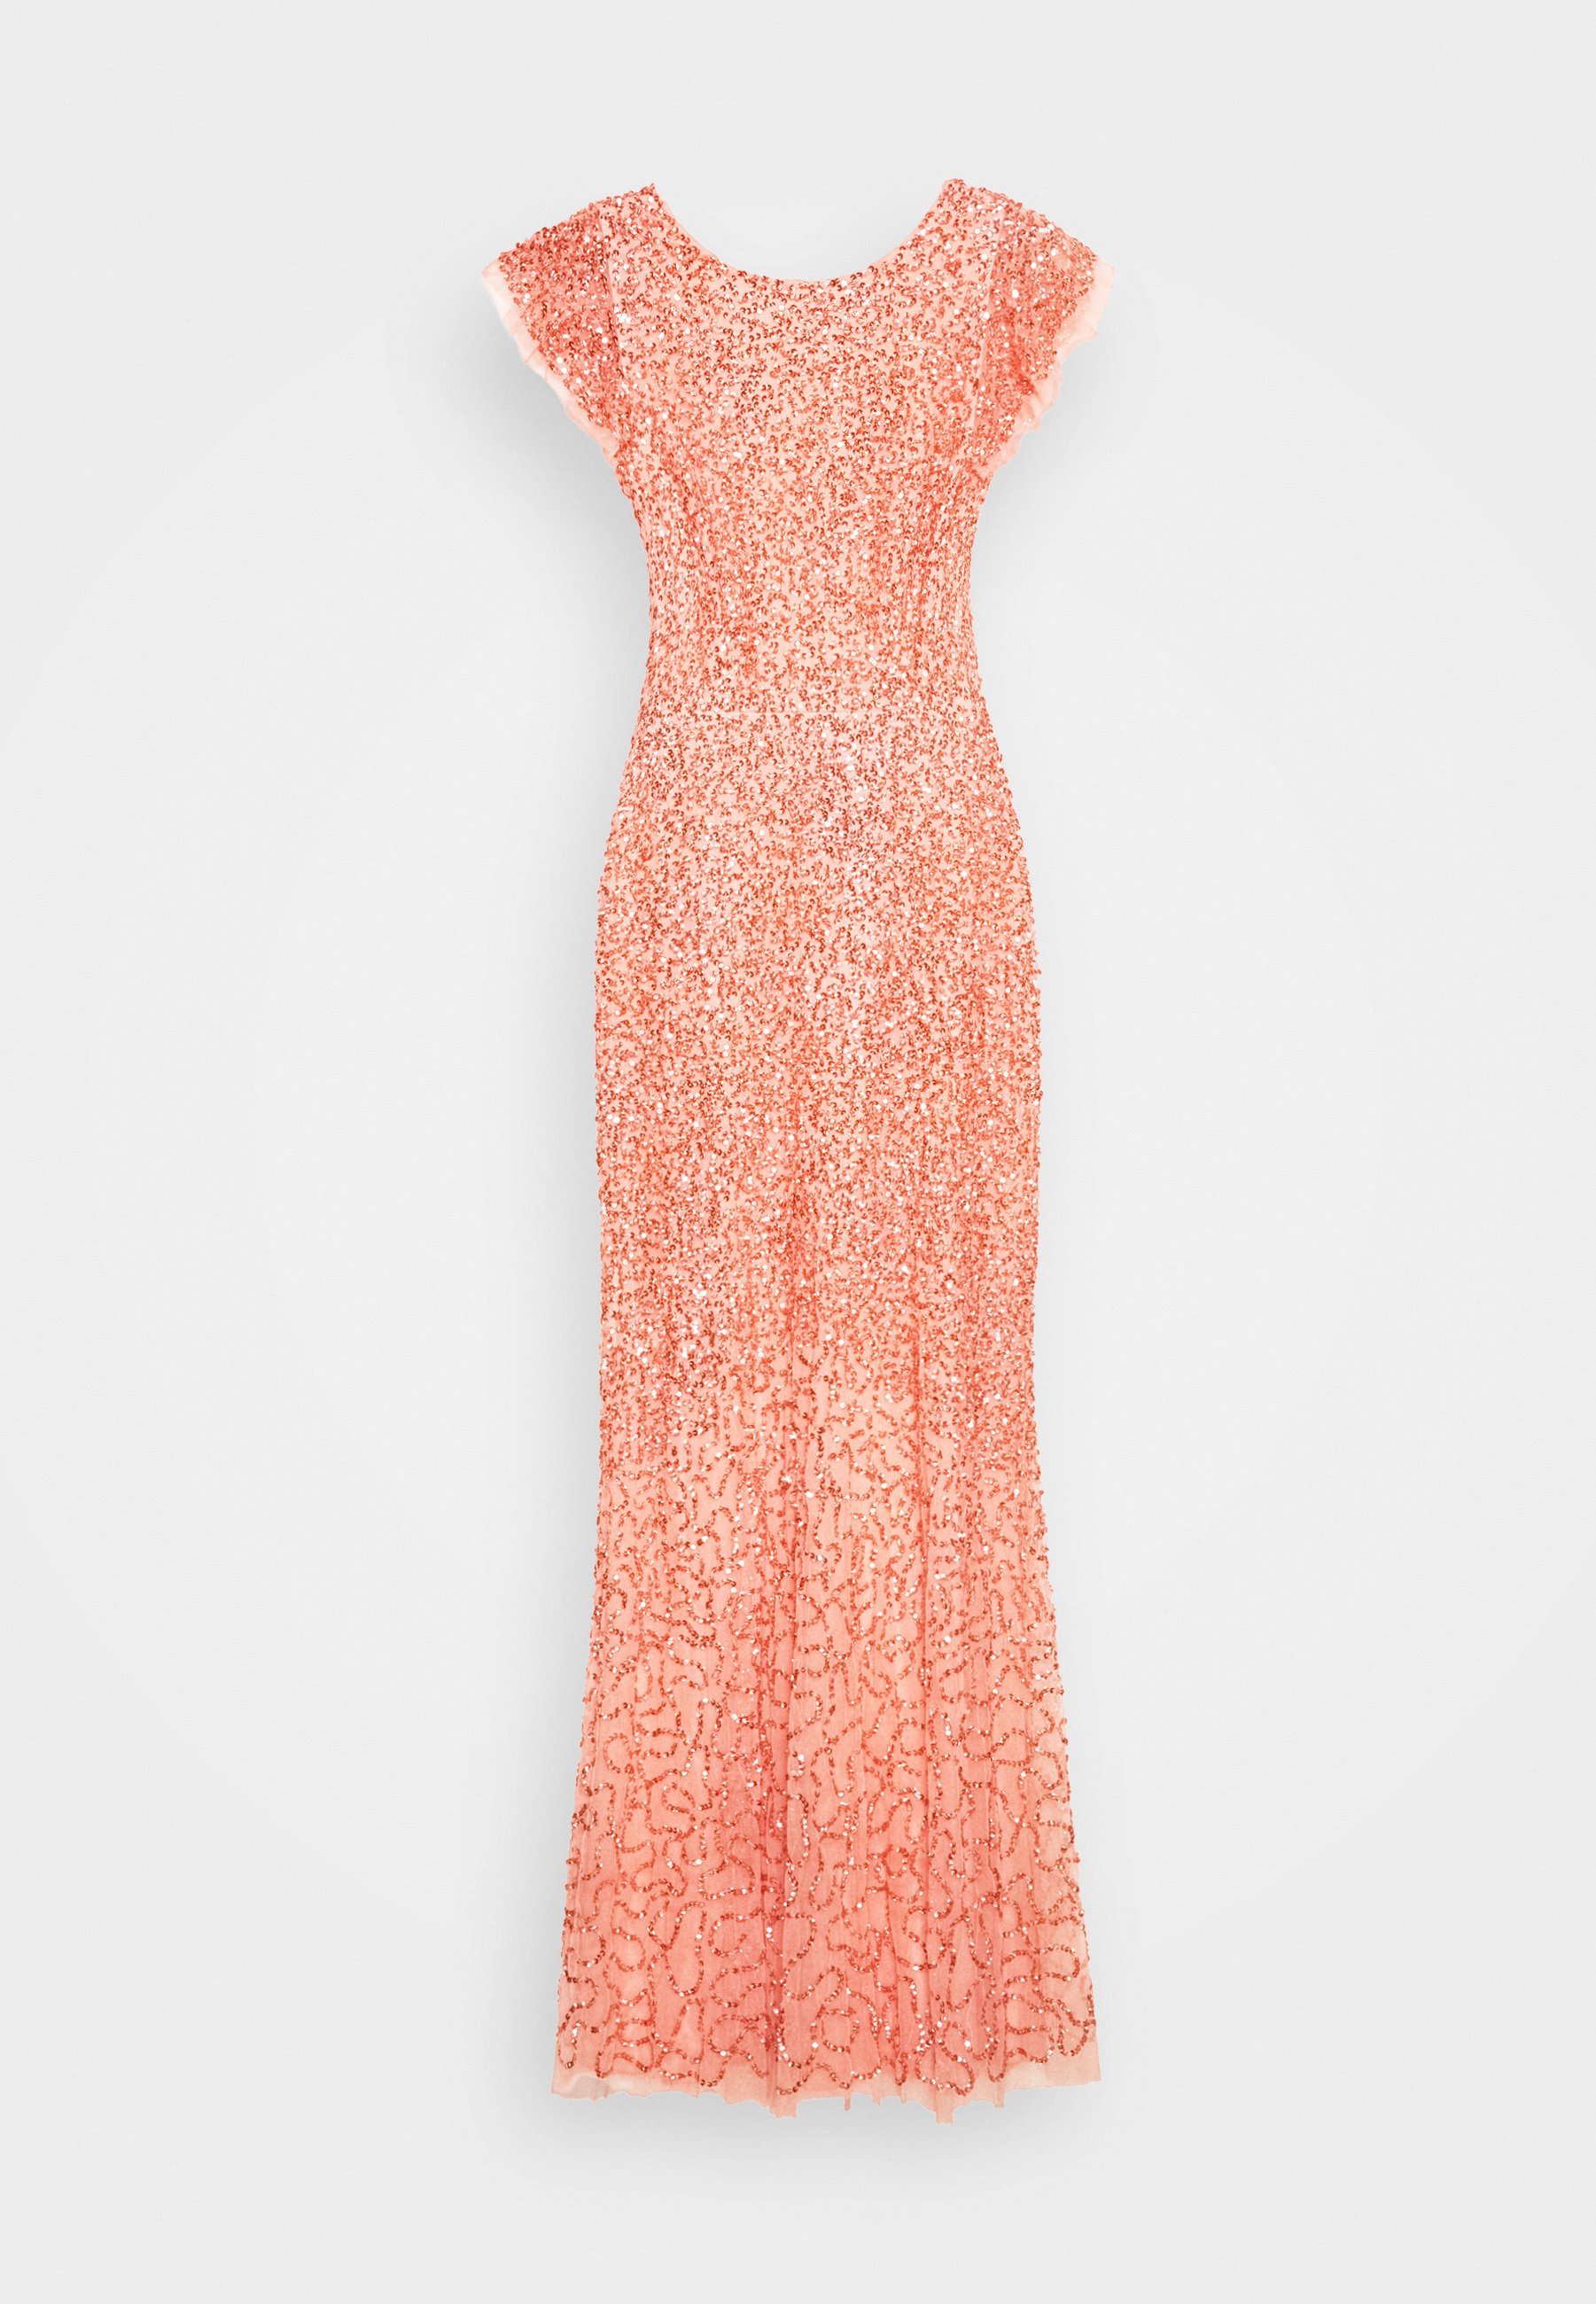 Maya Deluxe All Over Embellished Maxi Dress - Festklänning Coral